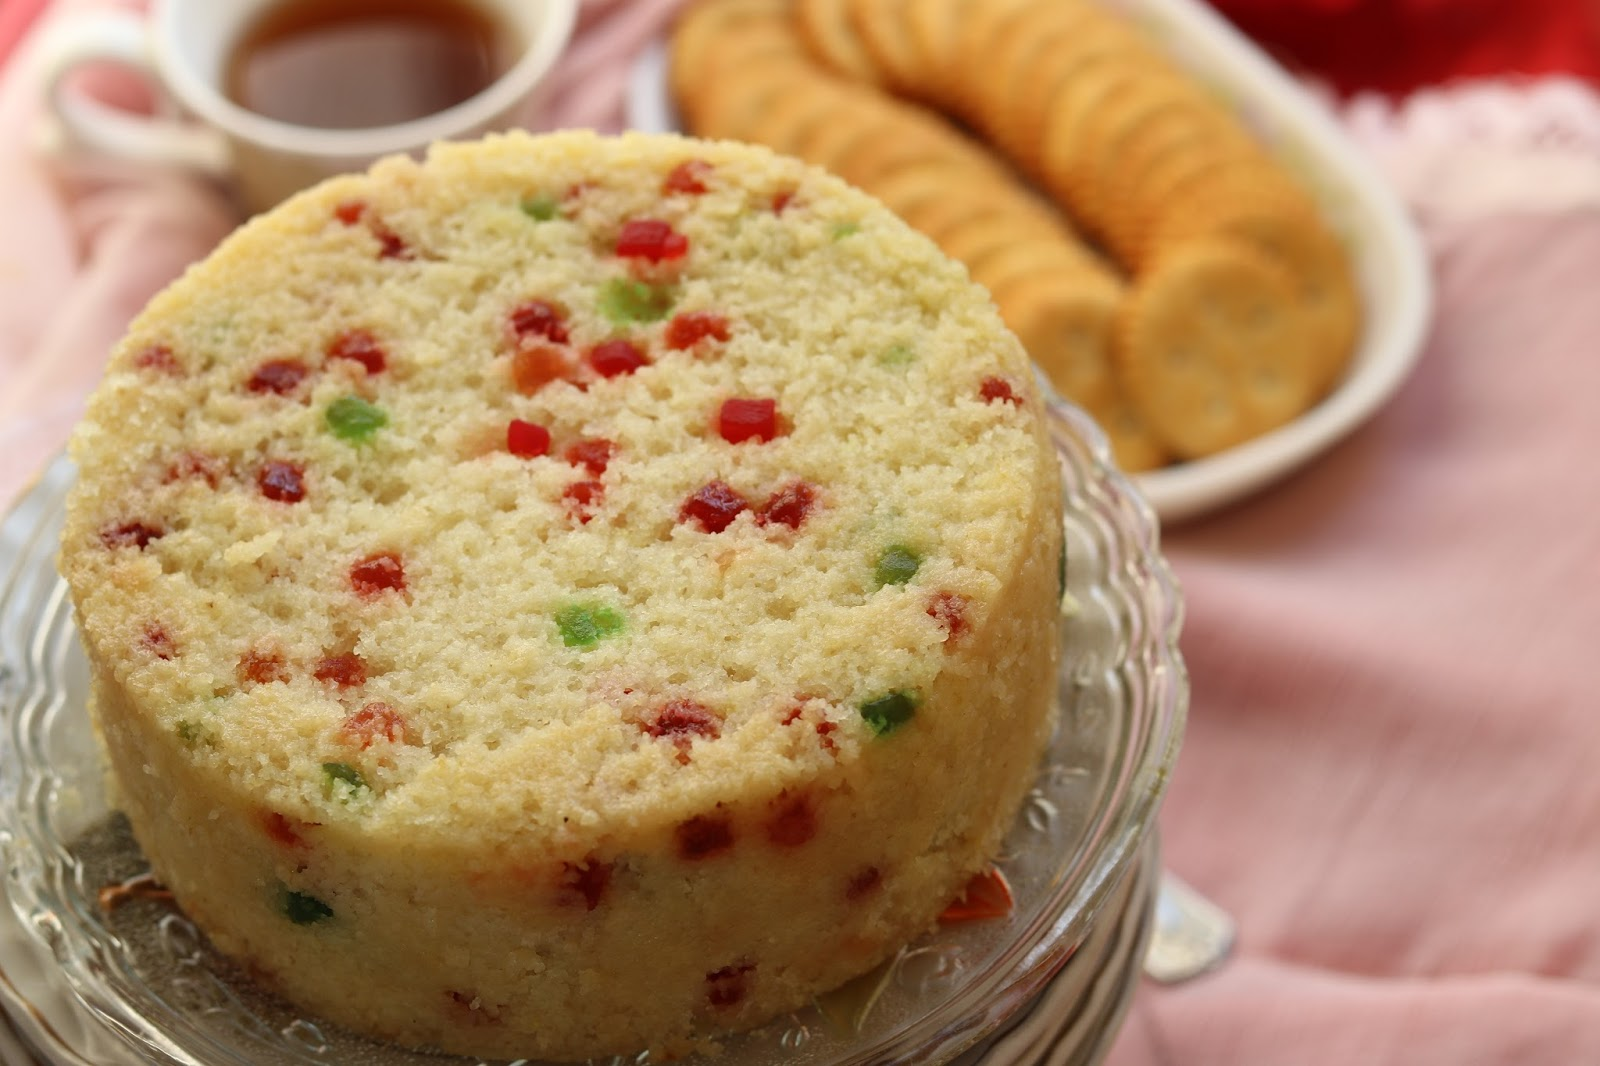 Cake Recipe With Kadai